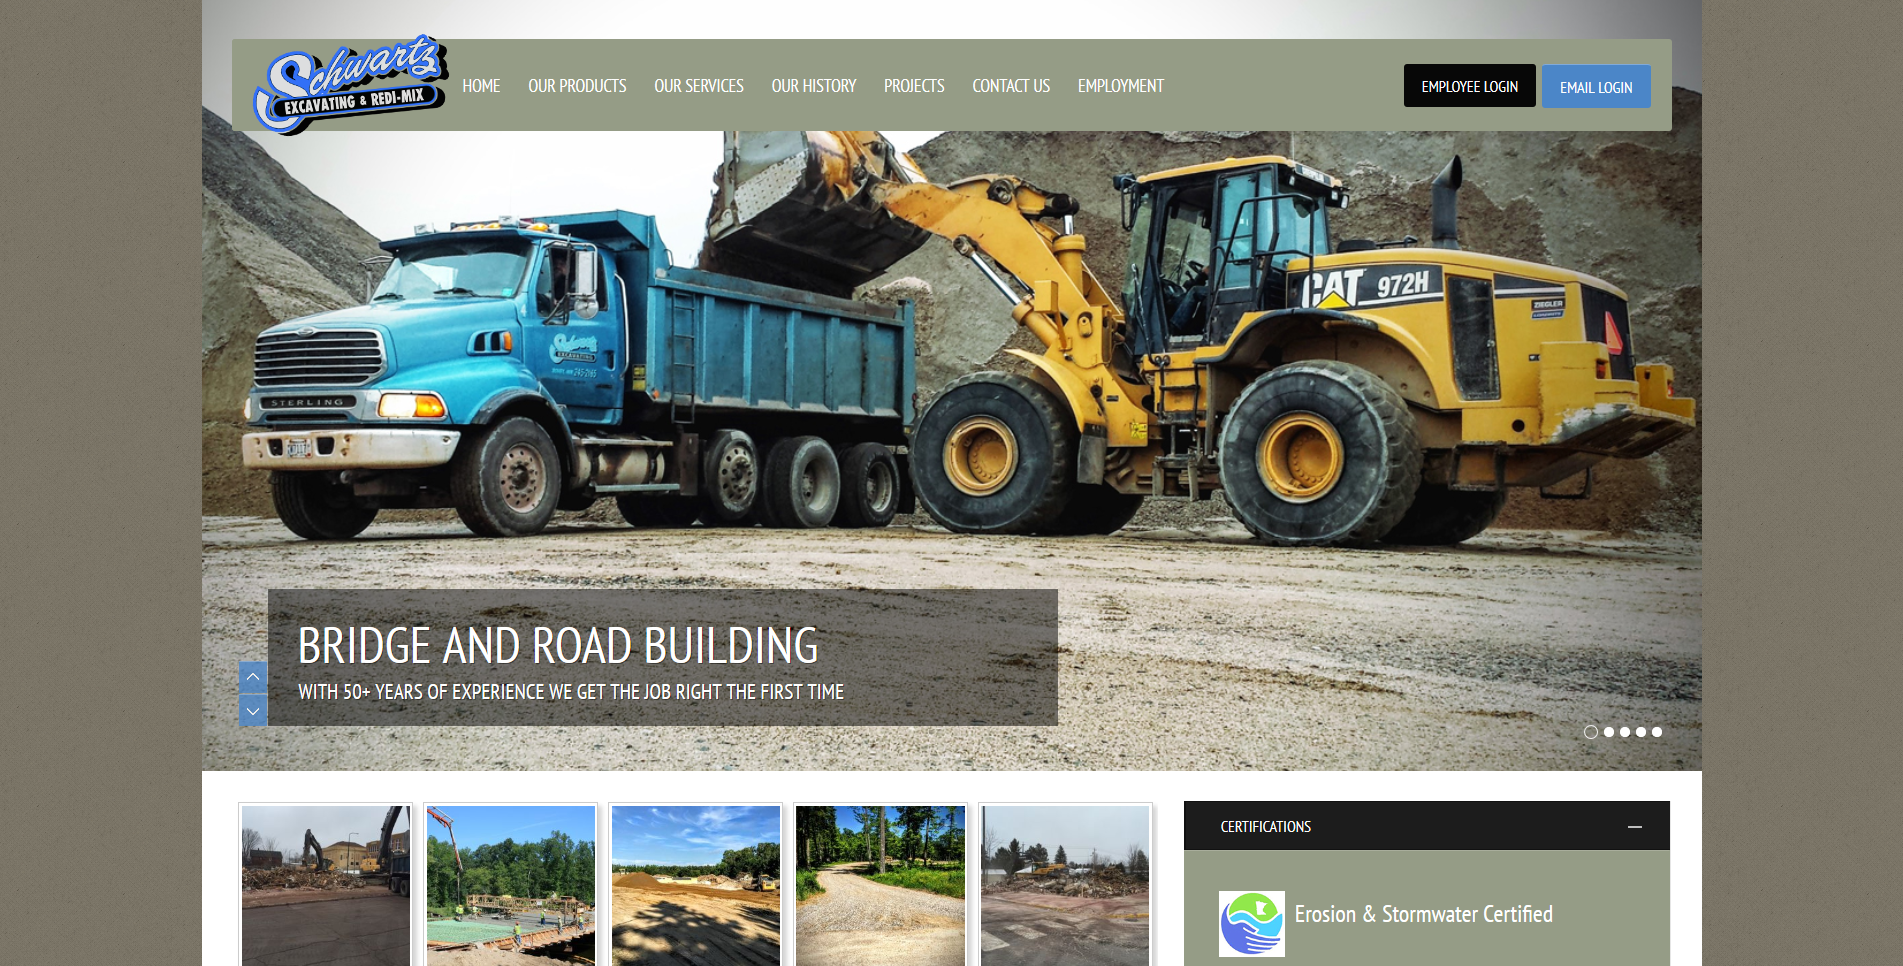 Website Design by Big Groovy Designs